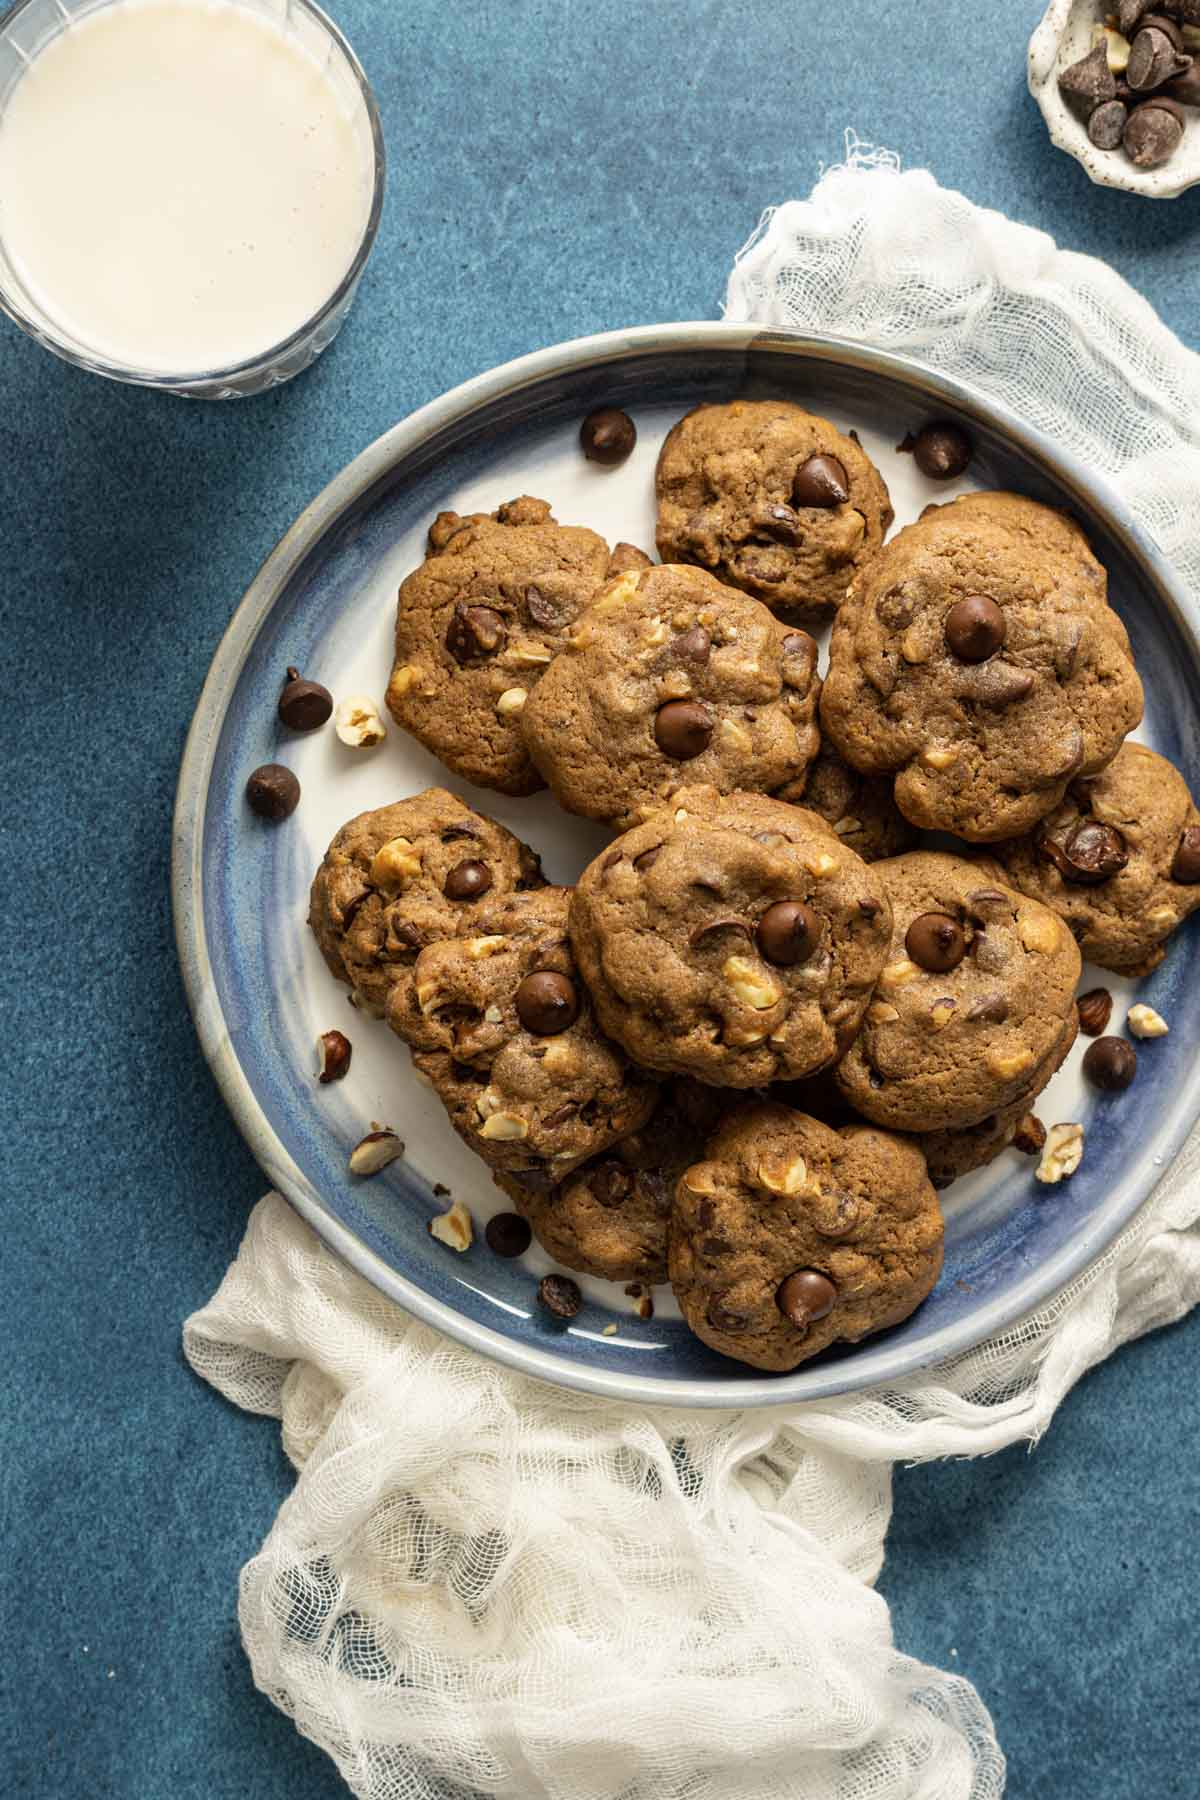 A plate of double chocolate chip cookies with milk